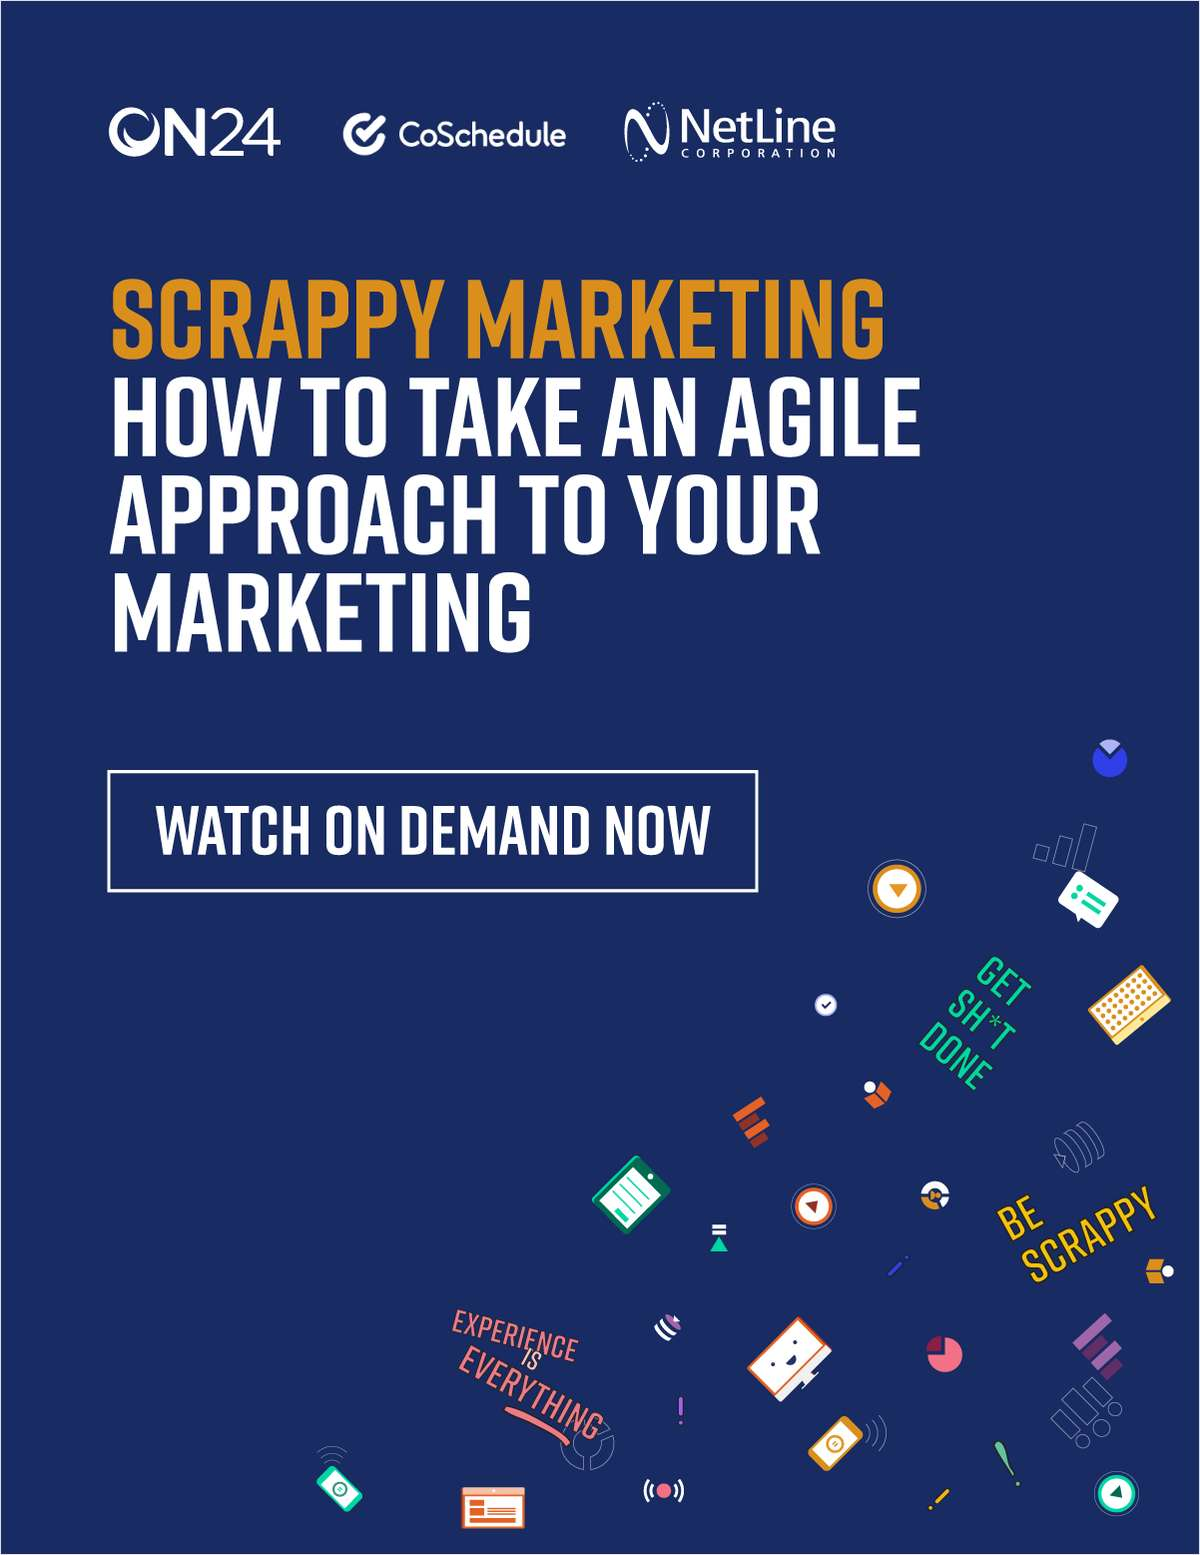 Scrappy Marketing Series: How to Take an Agile Approach to Your Marketing